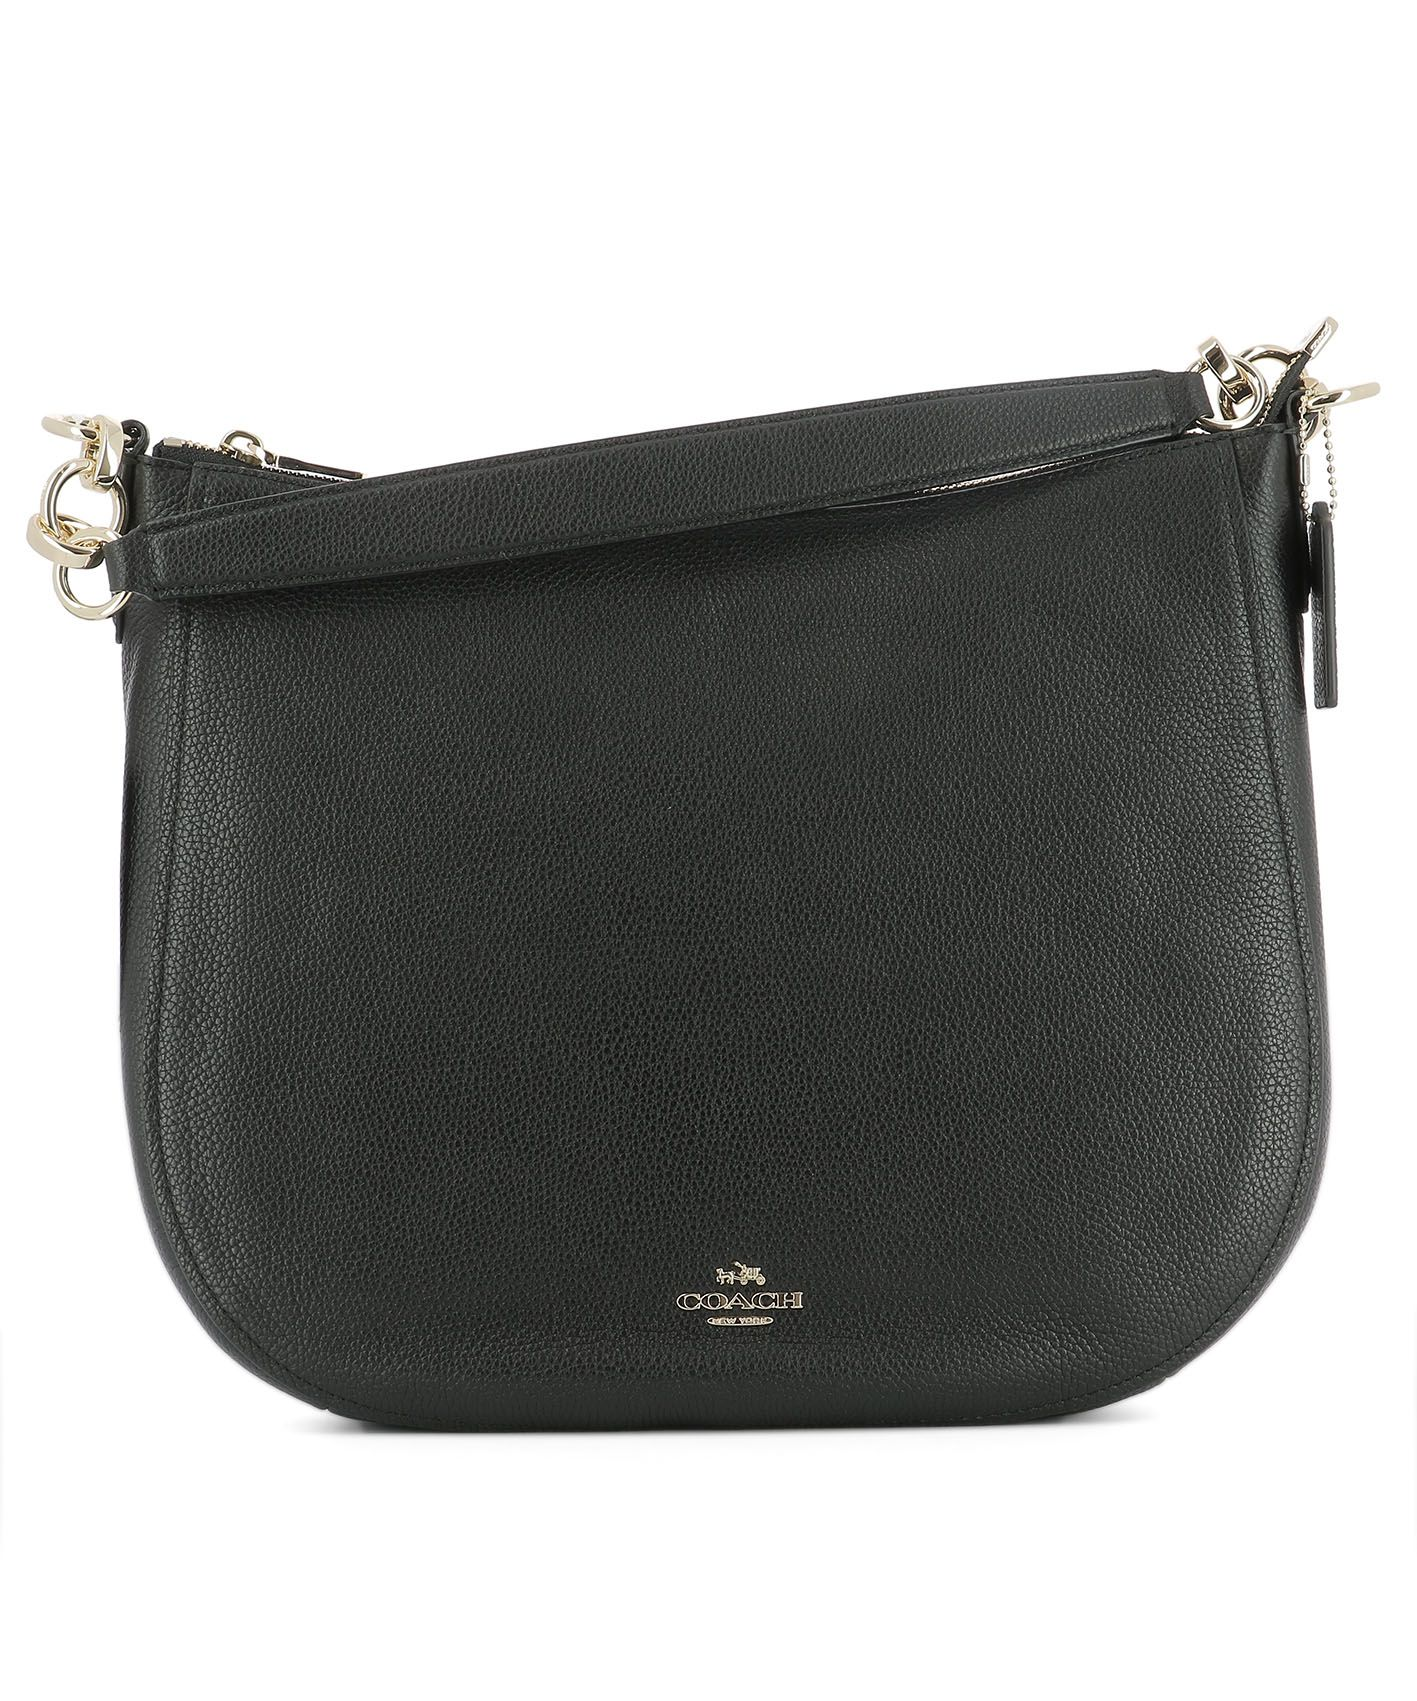 Black Leather Handle Bag